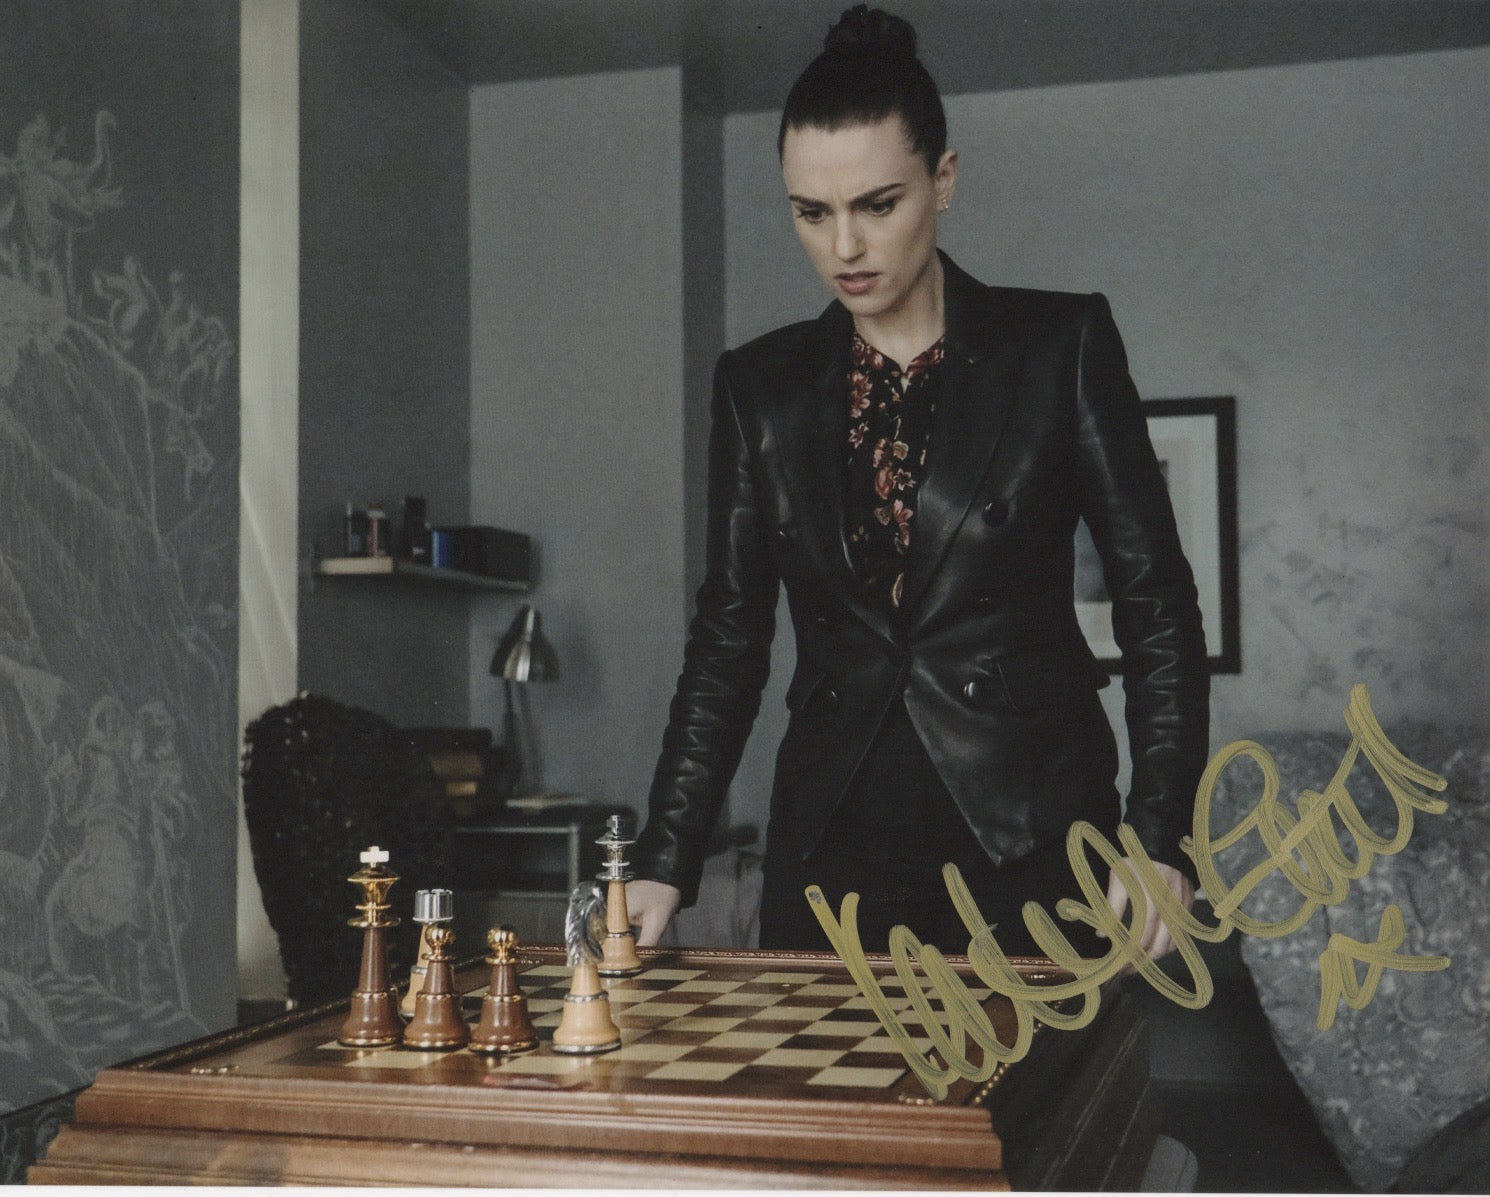 Katie McGrath Signed Autograph 8x10 Photo Supergirl #22 - Outlaw Hobbies Authentic Autographs